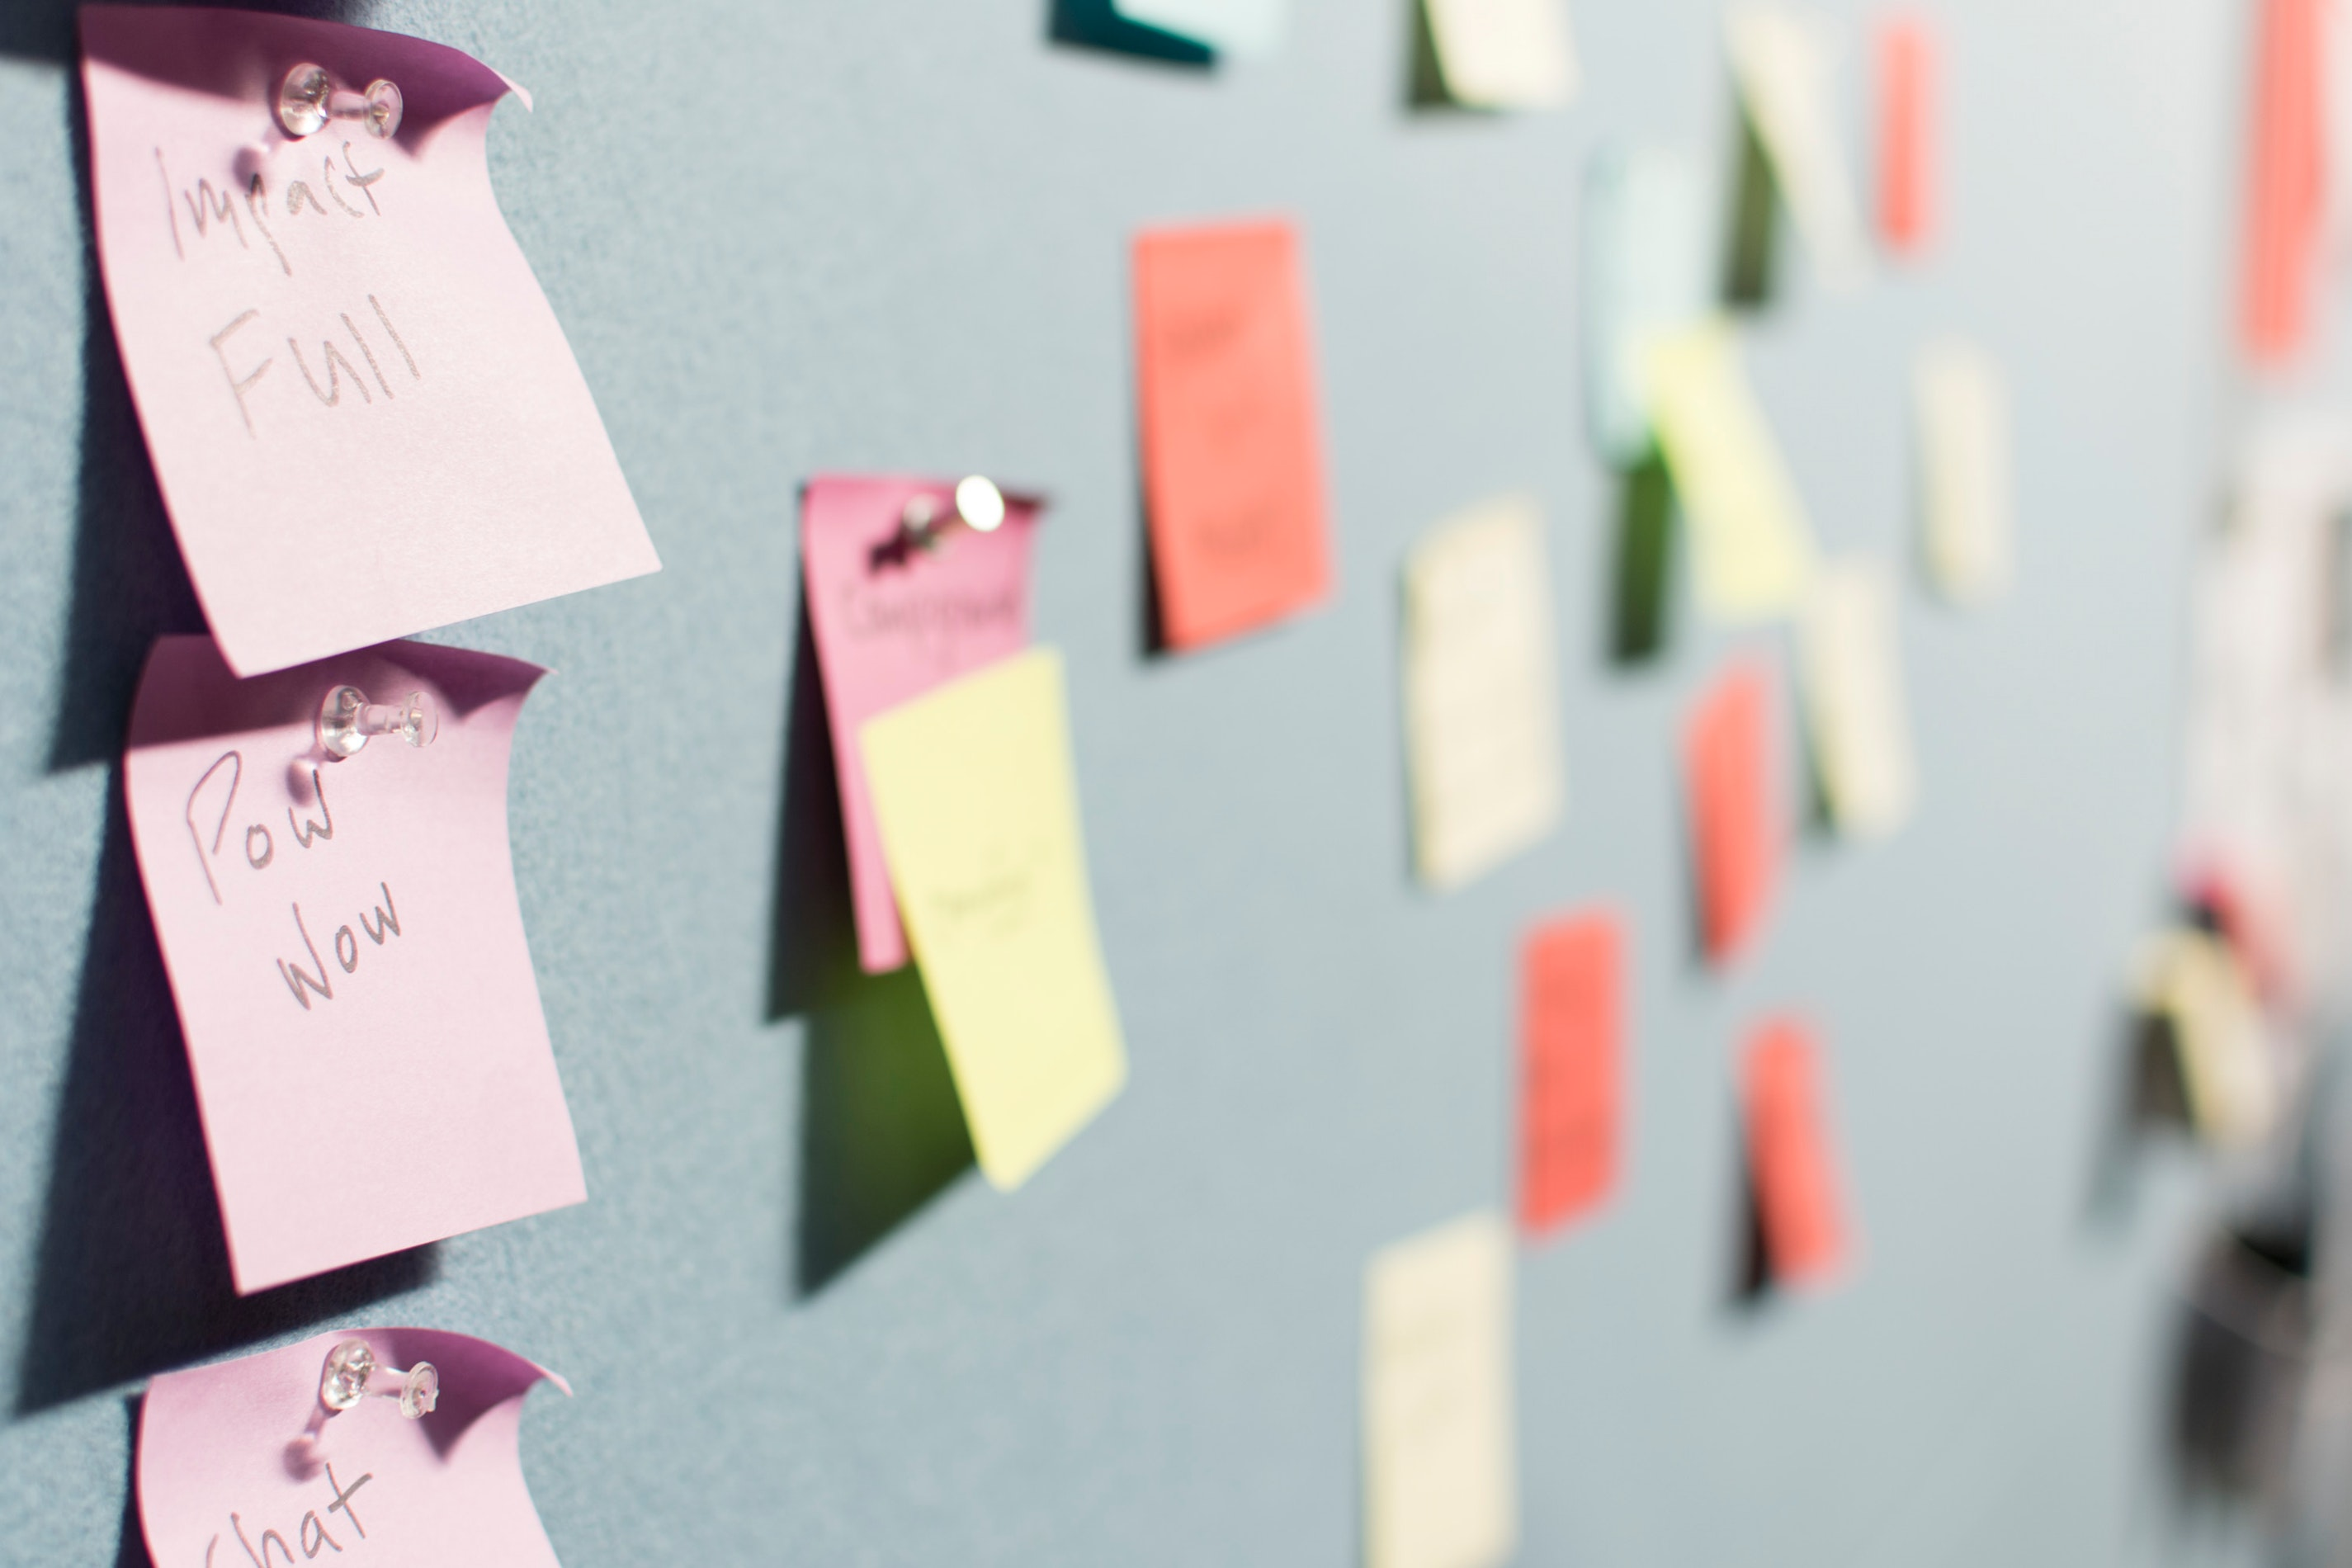 agile project management guide customer feedback